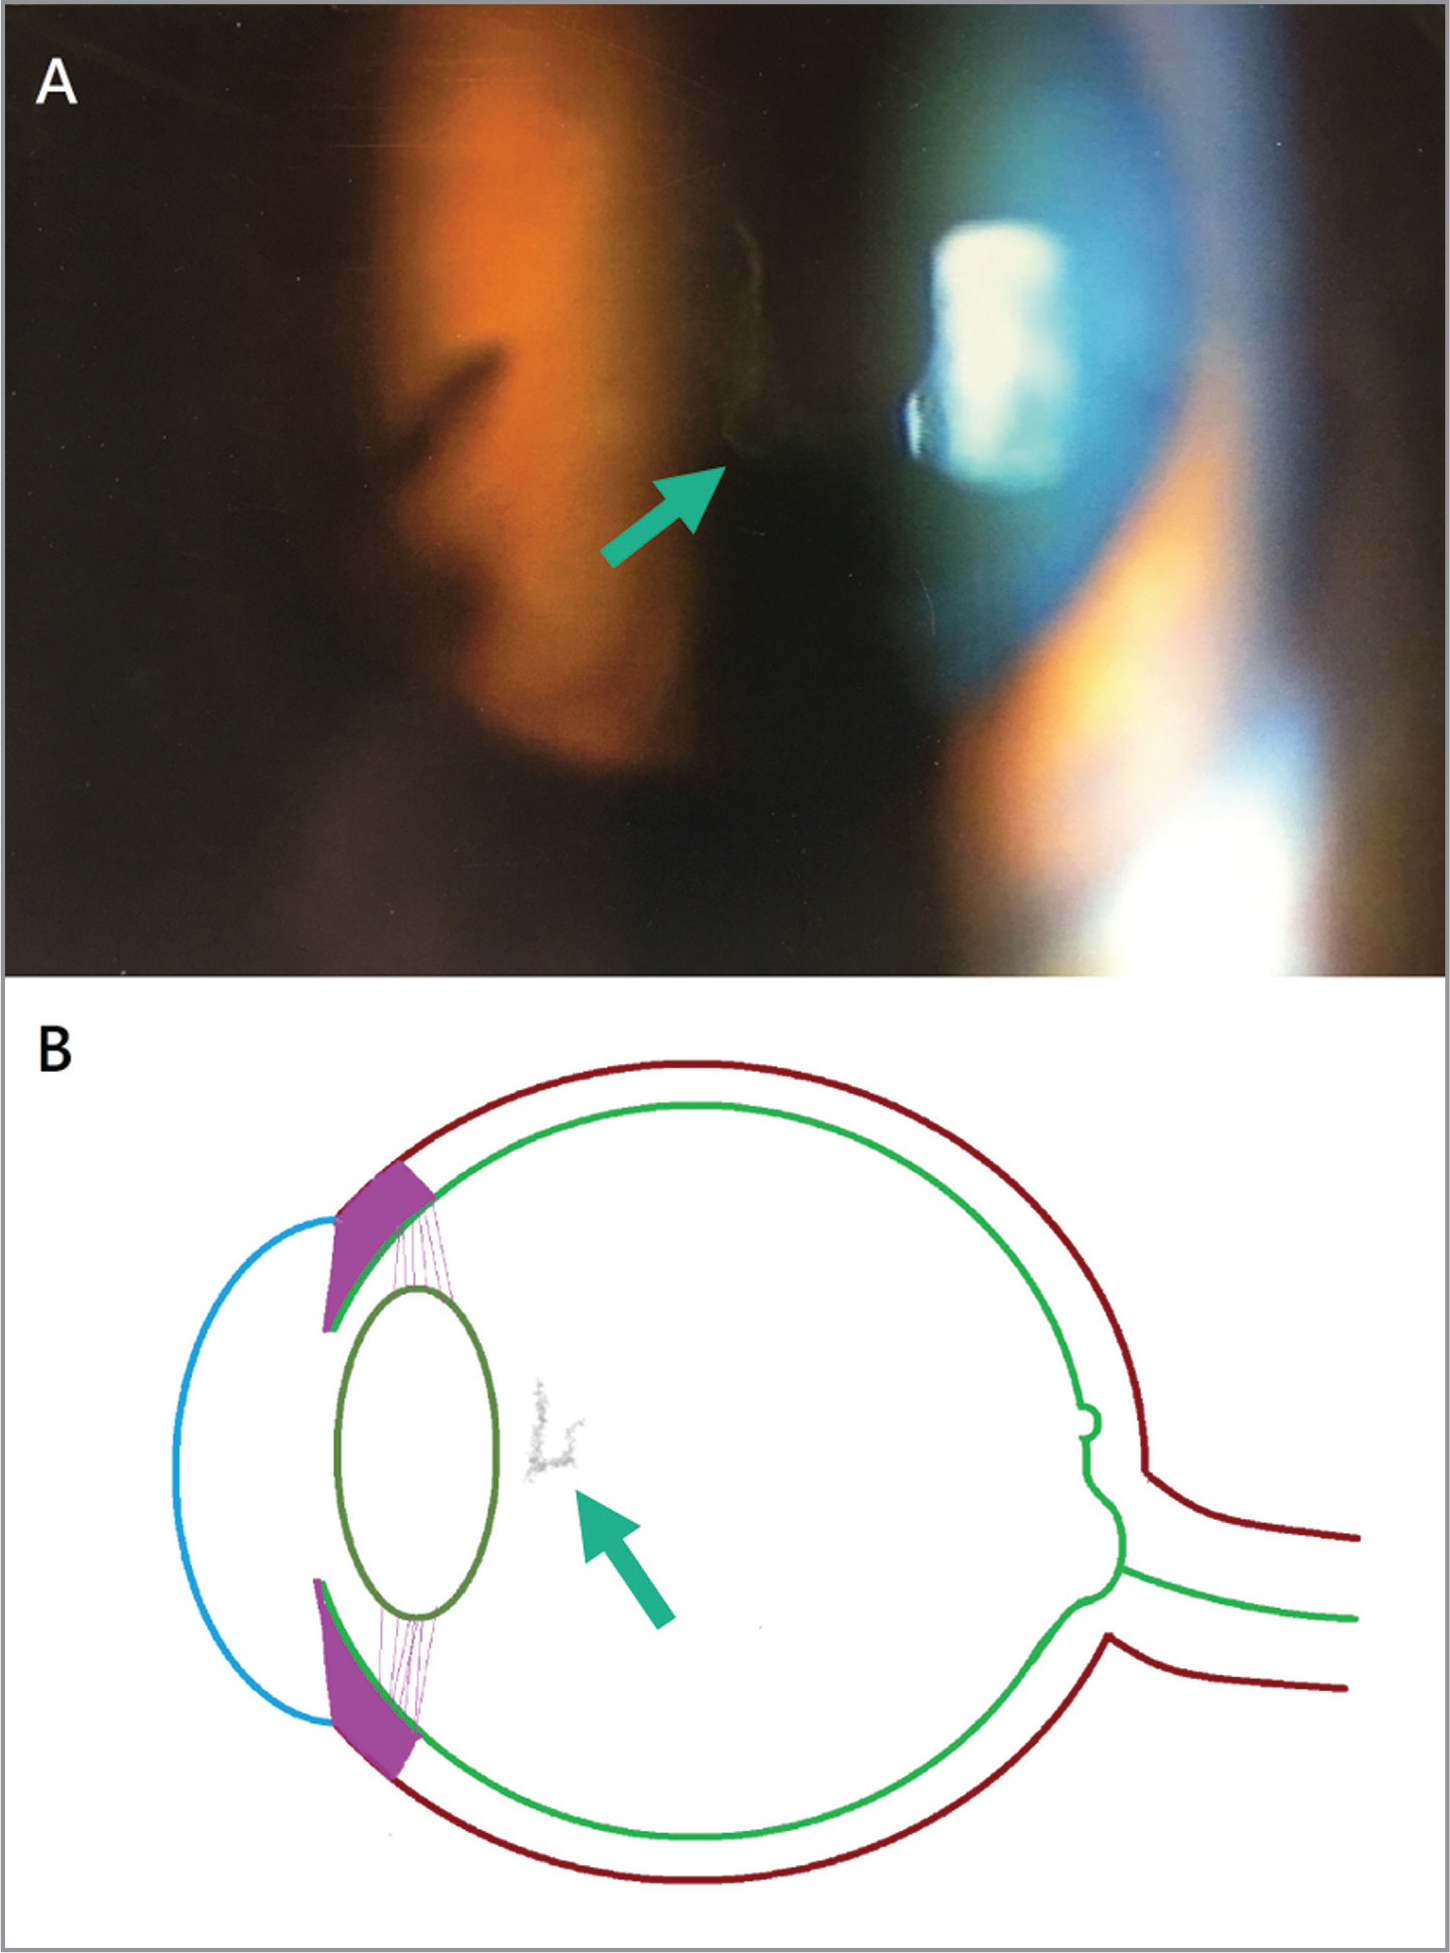 External photography in the right eye before YAG laser vitreolysis. (A) Opacities in the anterior vitreous (arrow). (B) Schematic drawing of anterior vitreous opacities (arrow) according to records from the referring doctor.